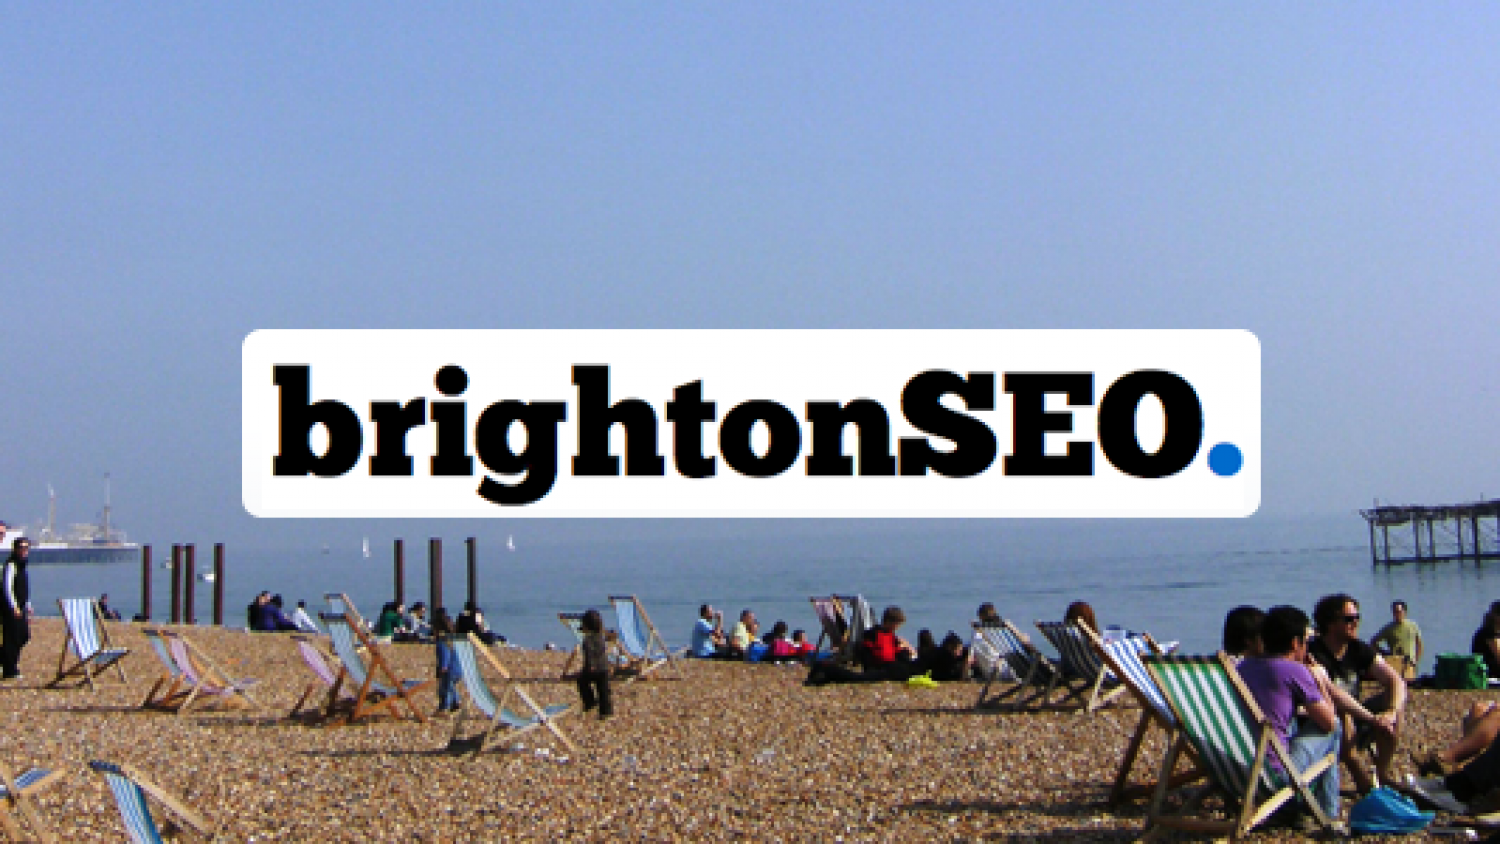 BrightonSEO – All the Presentations in One Place!